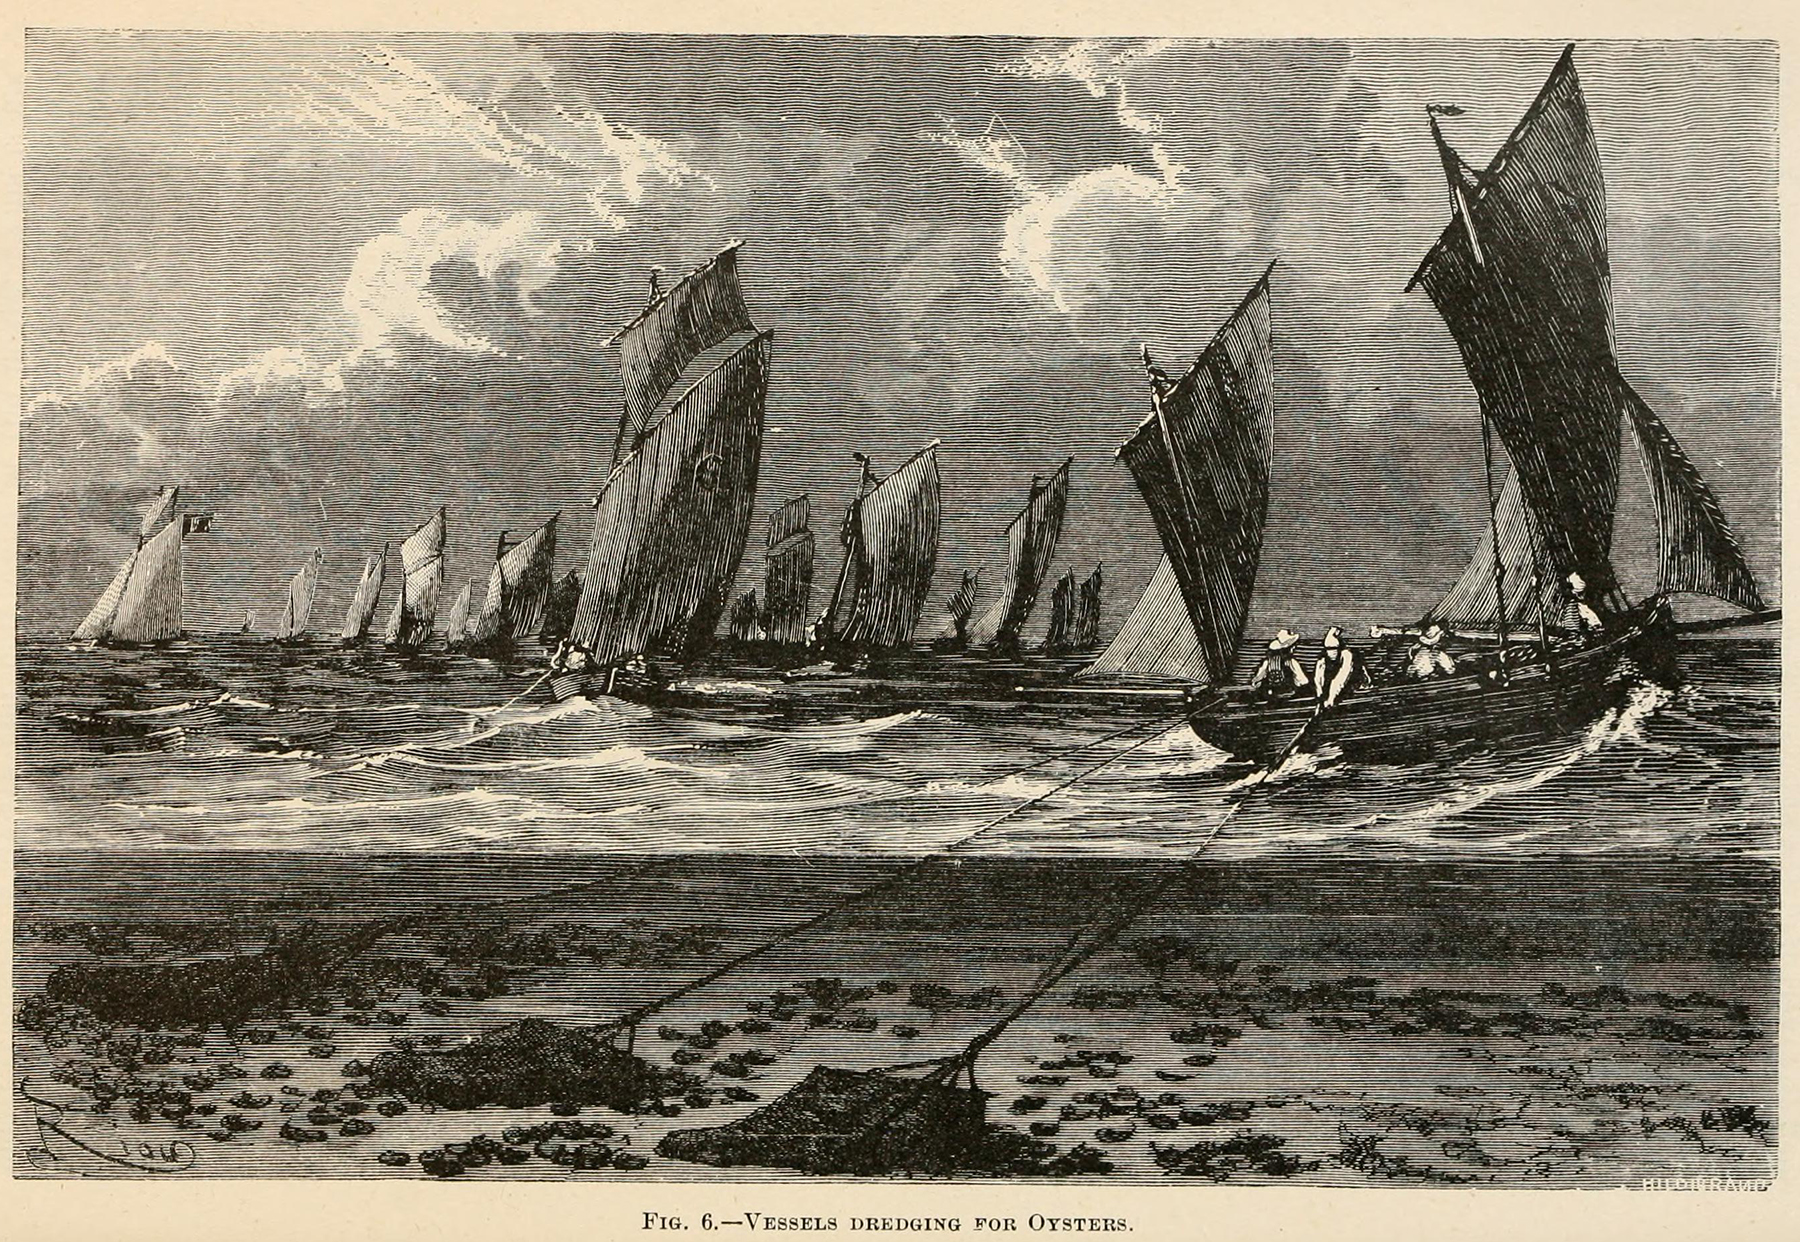 black and white illustration of ships at sea dredging for oysters